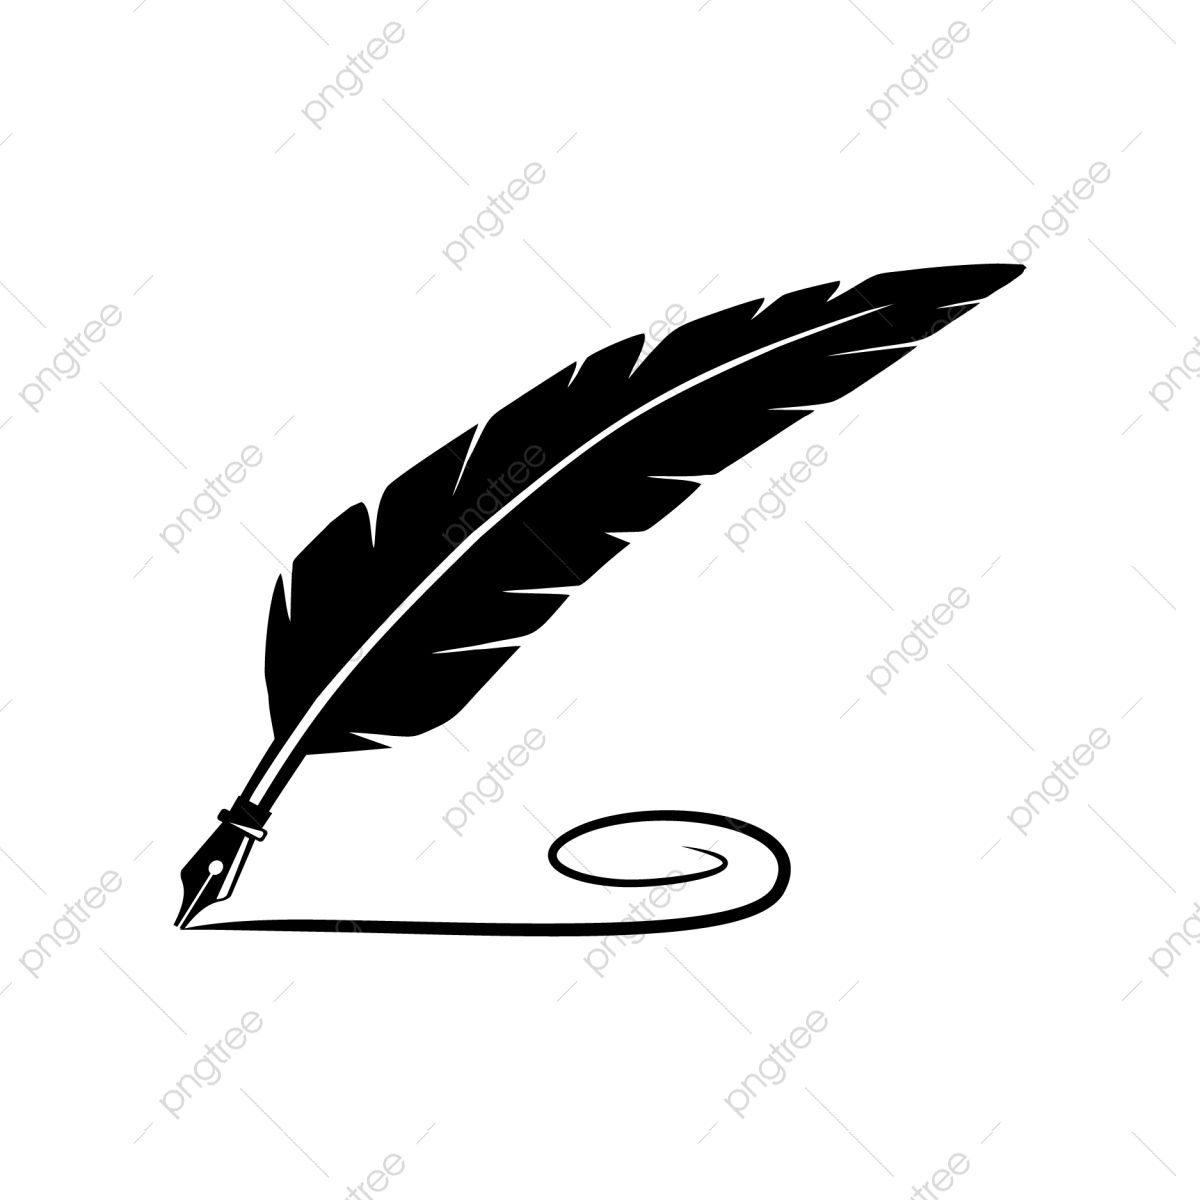 Black Quill Feather Pen With Writing Line Vector Logo Design Feather Feather Icons Line Icons Png And Vector With Transparent Background For Free Download Feather Logo Pen Icon Vector Logo Design